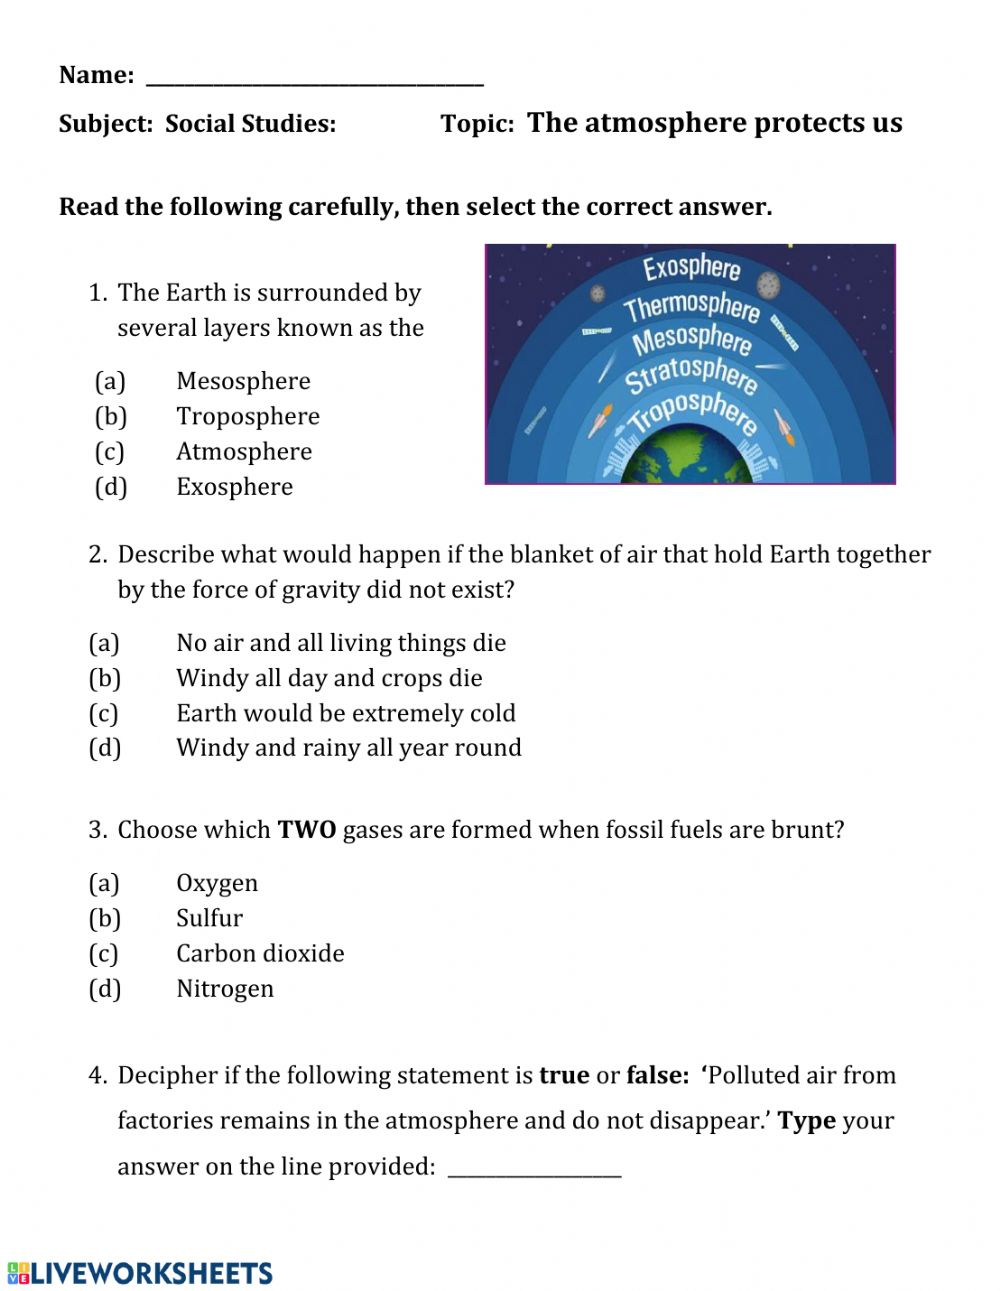 medium resolution of The atmosphere protects us worksheet